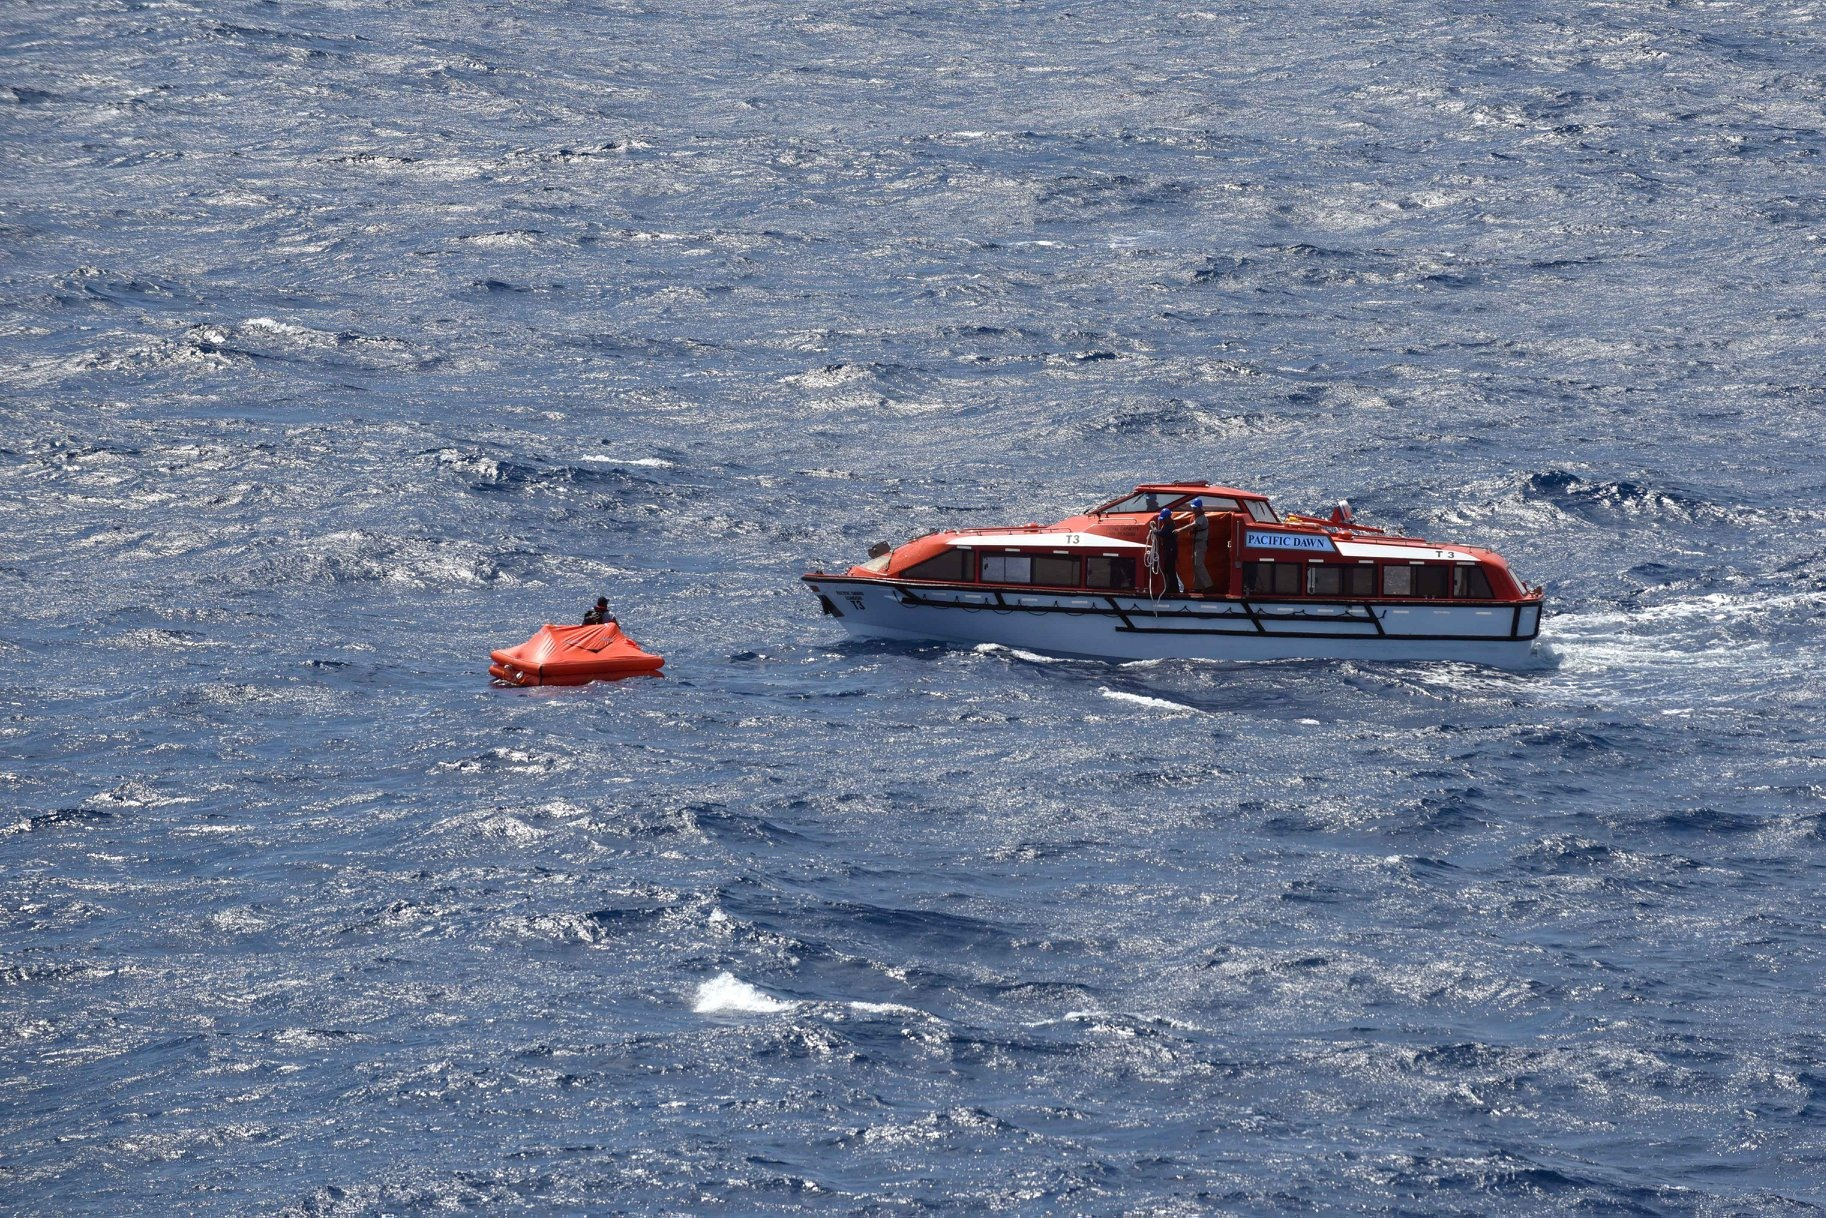 Pacific Dawn lifeboat coming to recover the crew